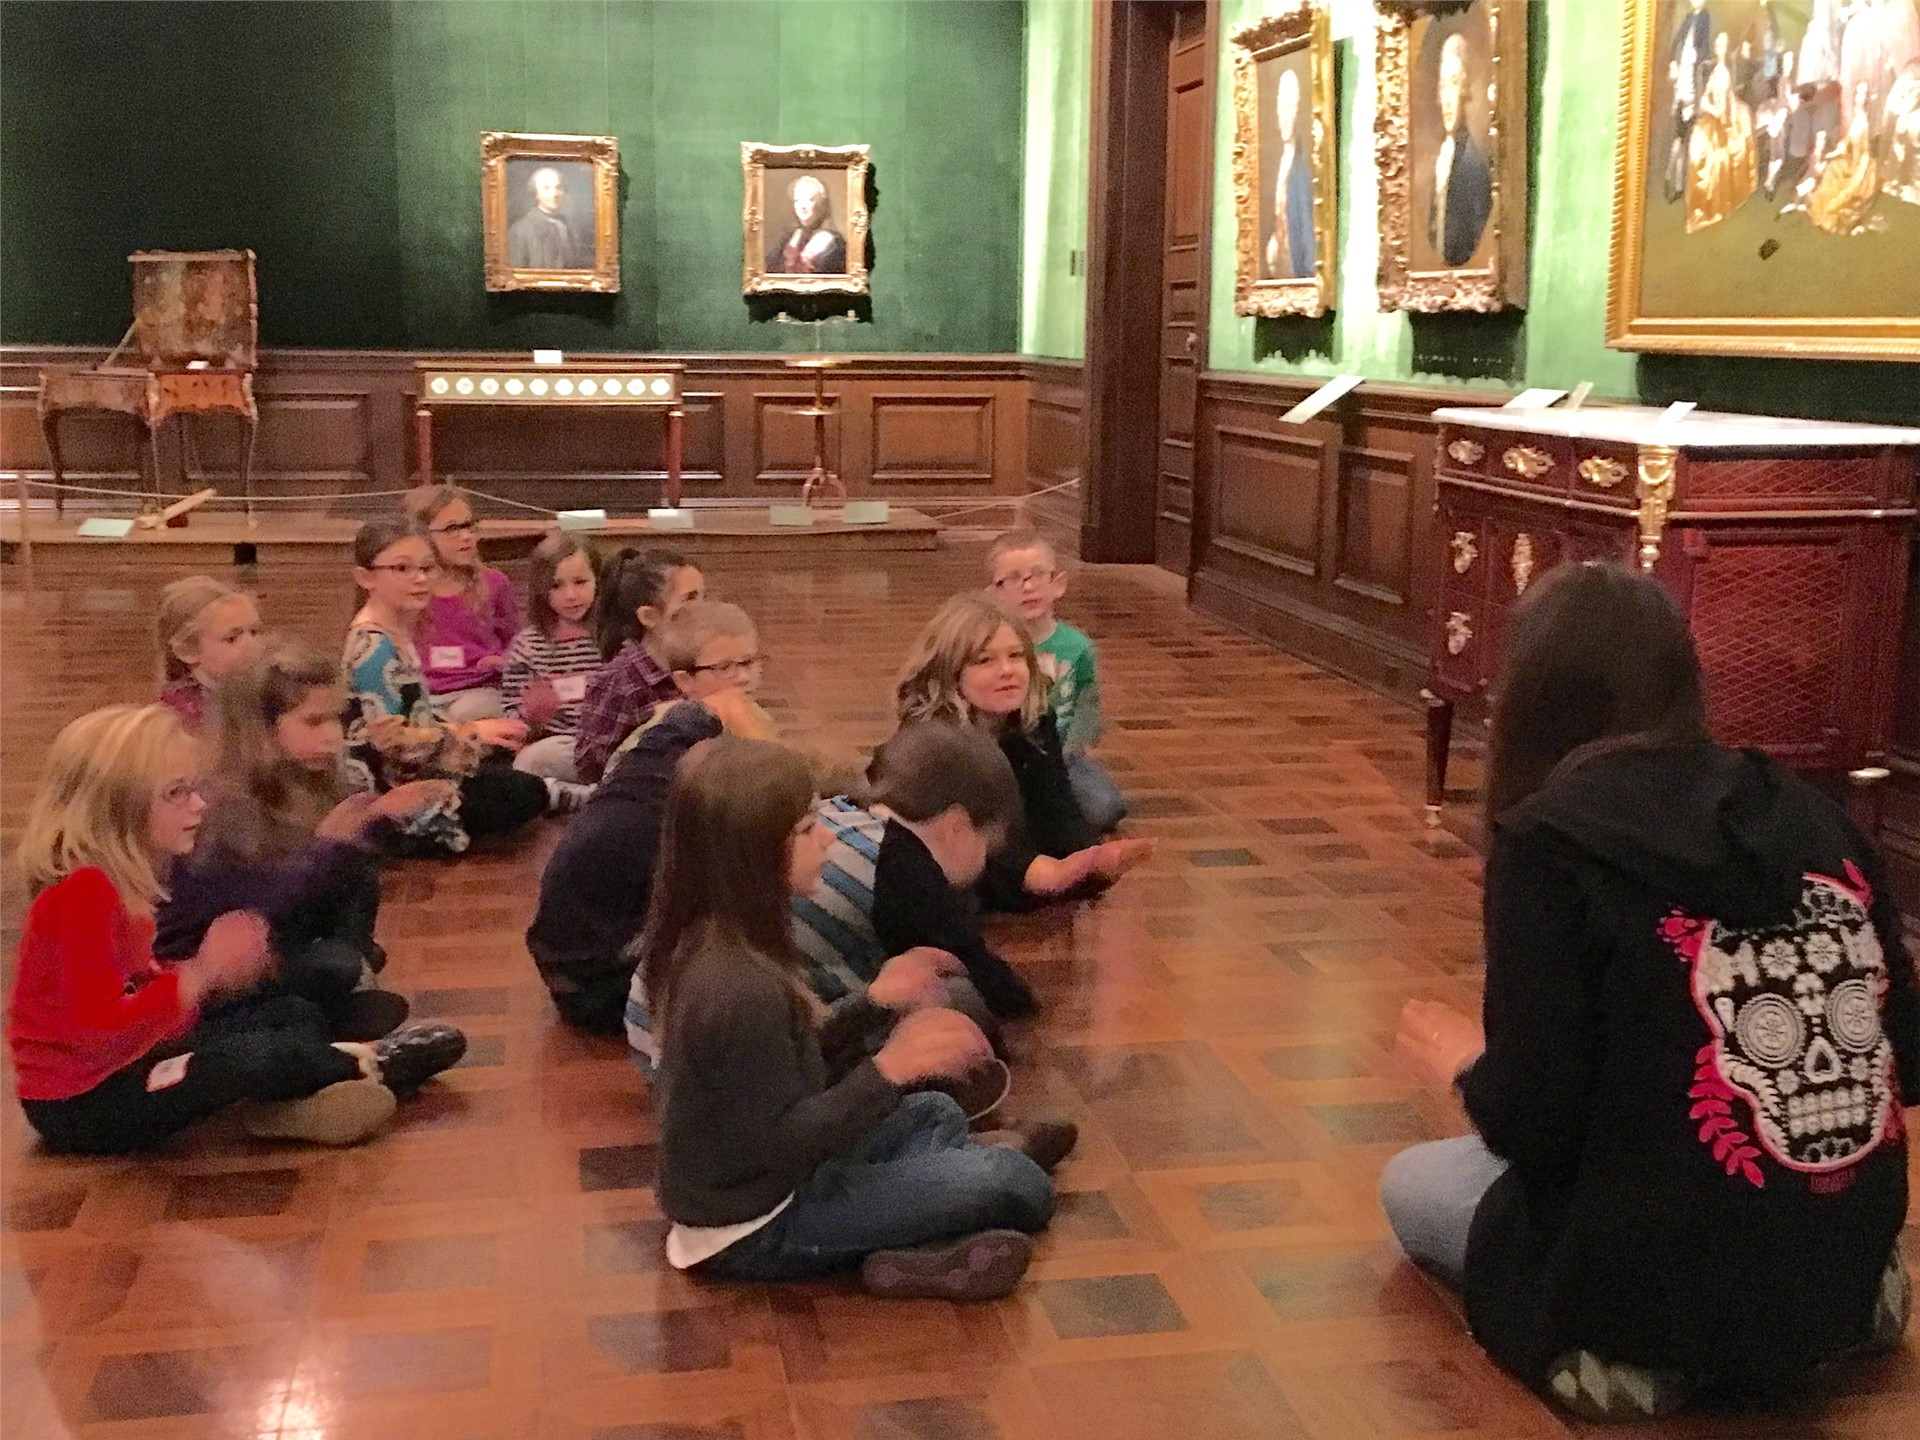 Visiting the Frick Art Museum